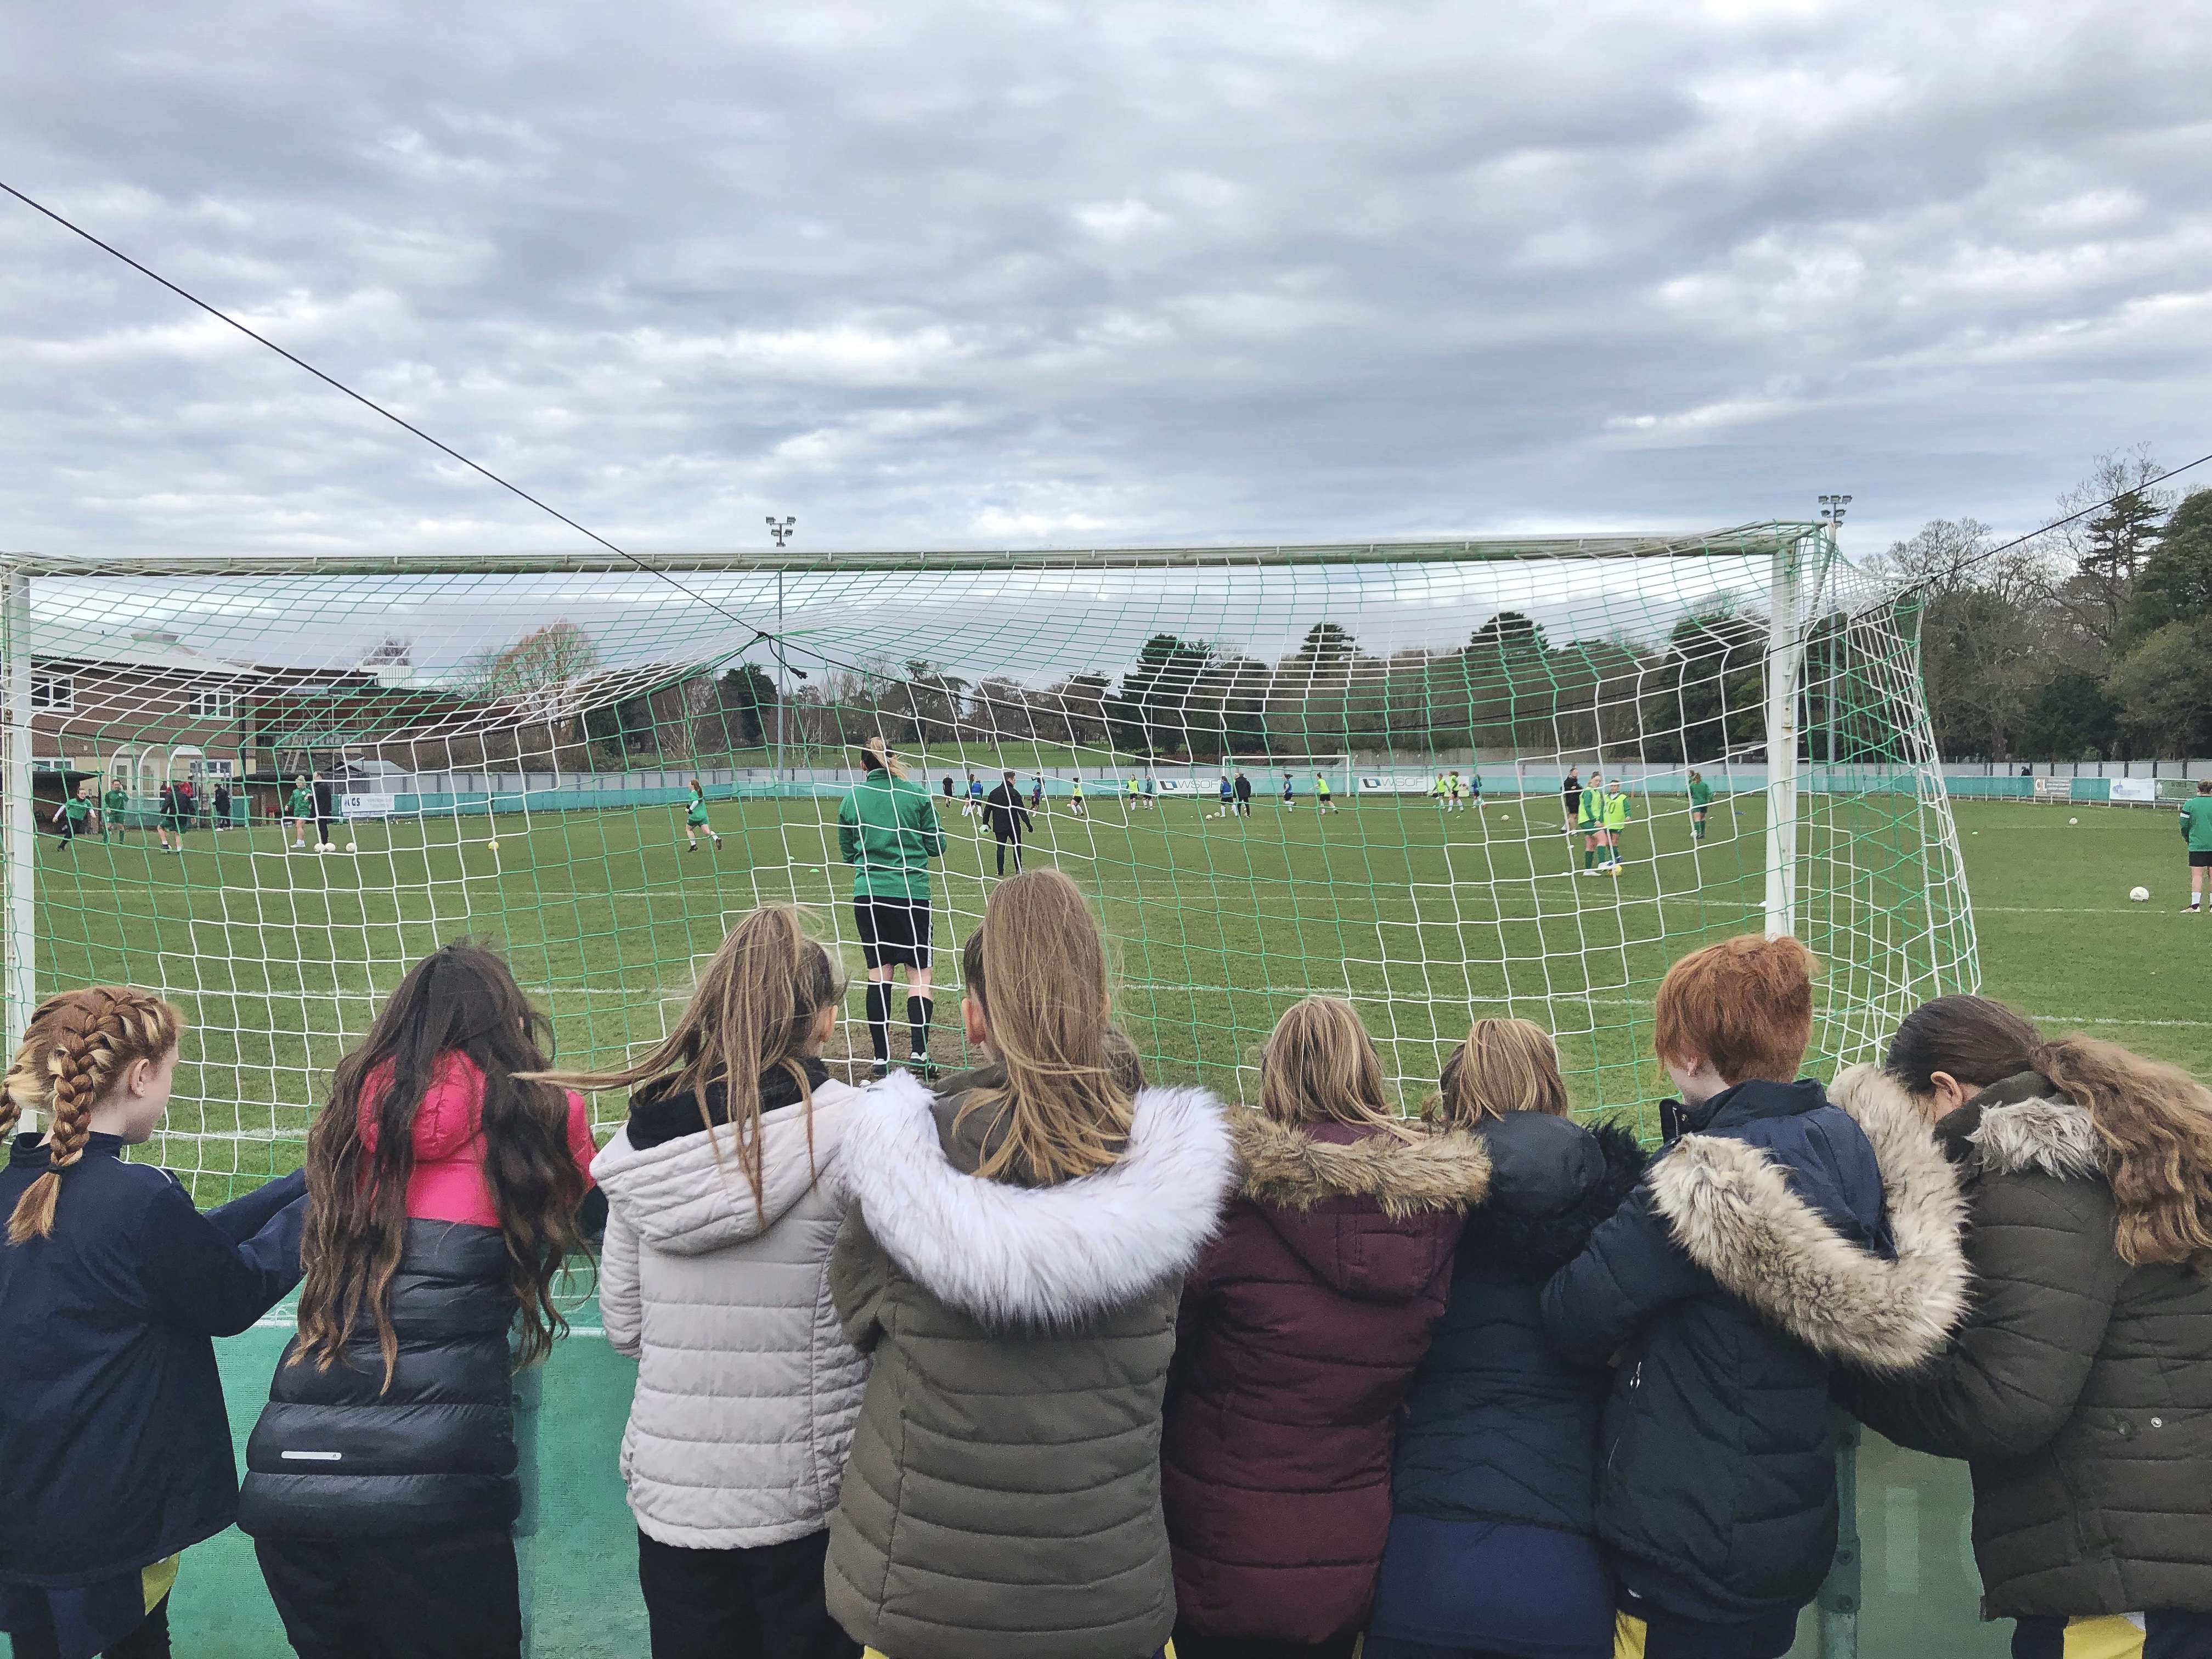 Havant & Waterlooville Girls watch as Chichester City prepare to take on Coventry United.